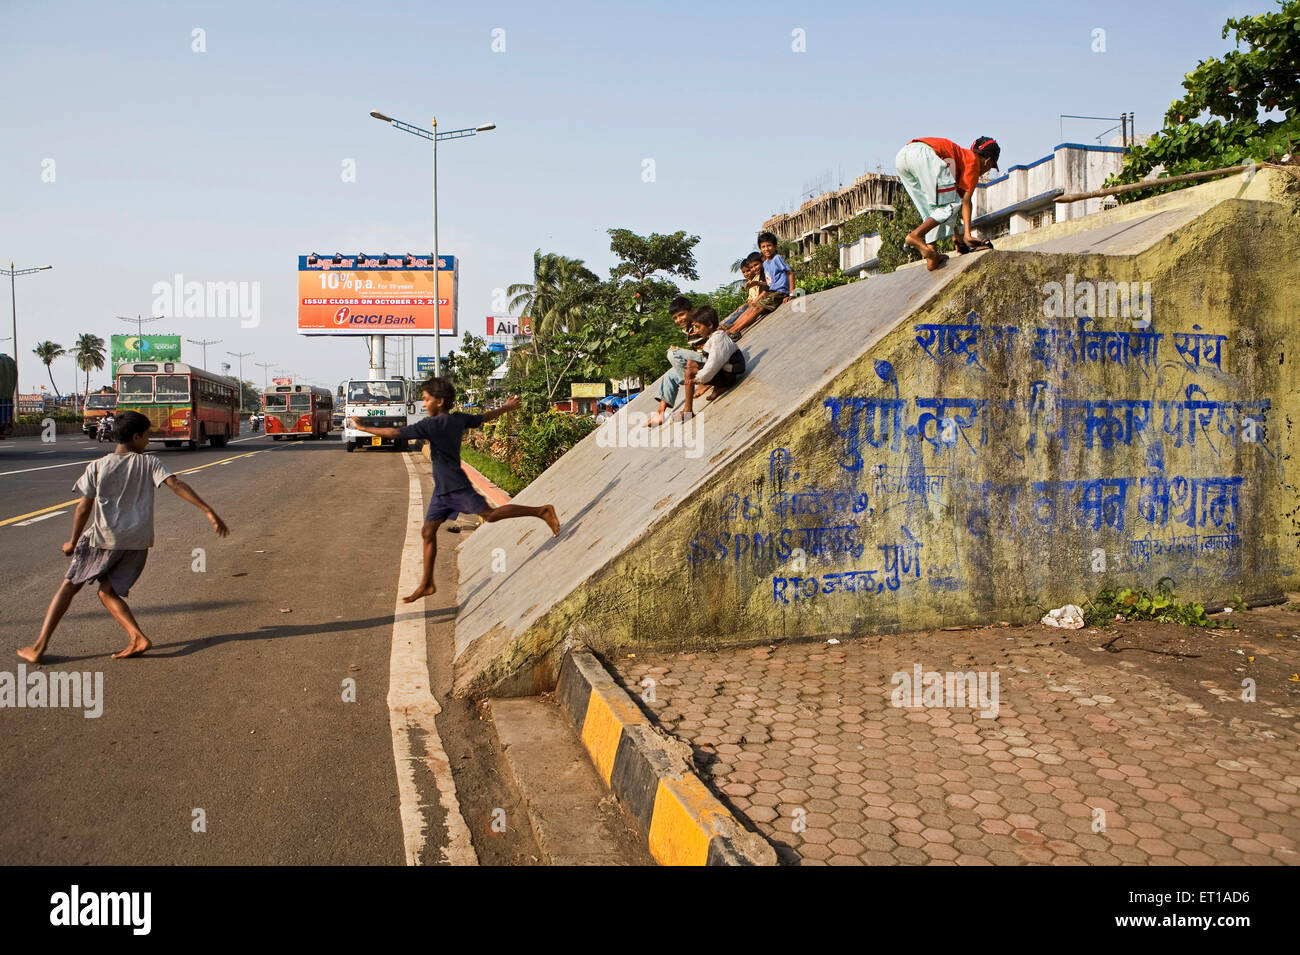 Inclined roof of pedestrian subway along busy western express highway dangerous for children to play game of slide - Stock Image